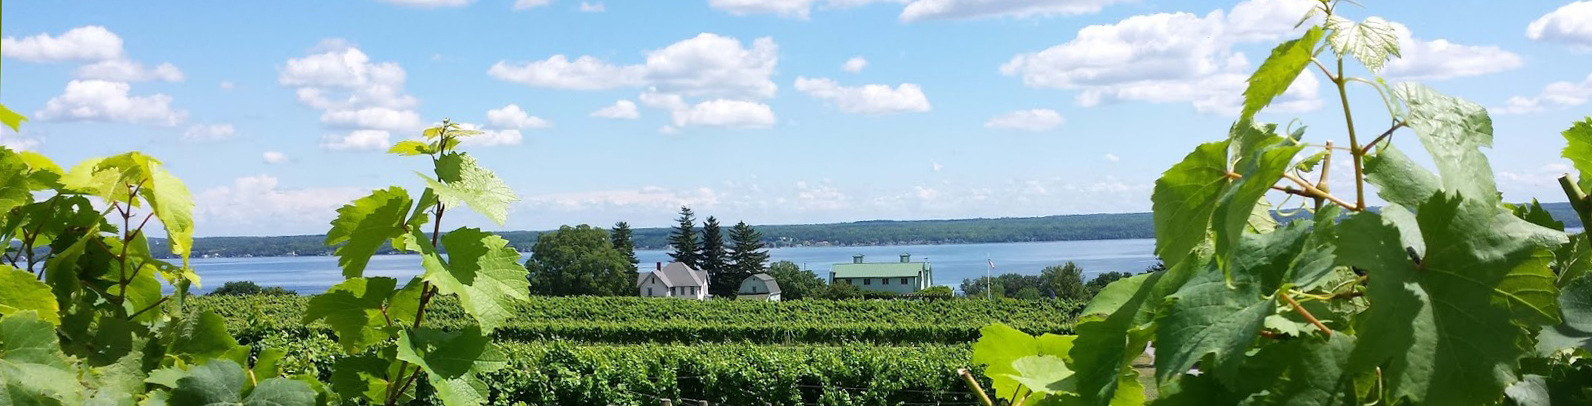 Finger Lakes, Fox Run Vineyards